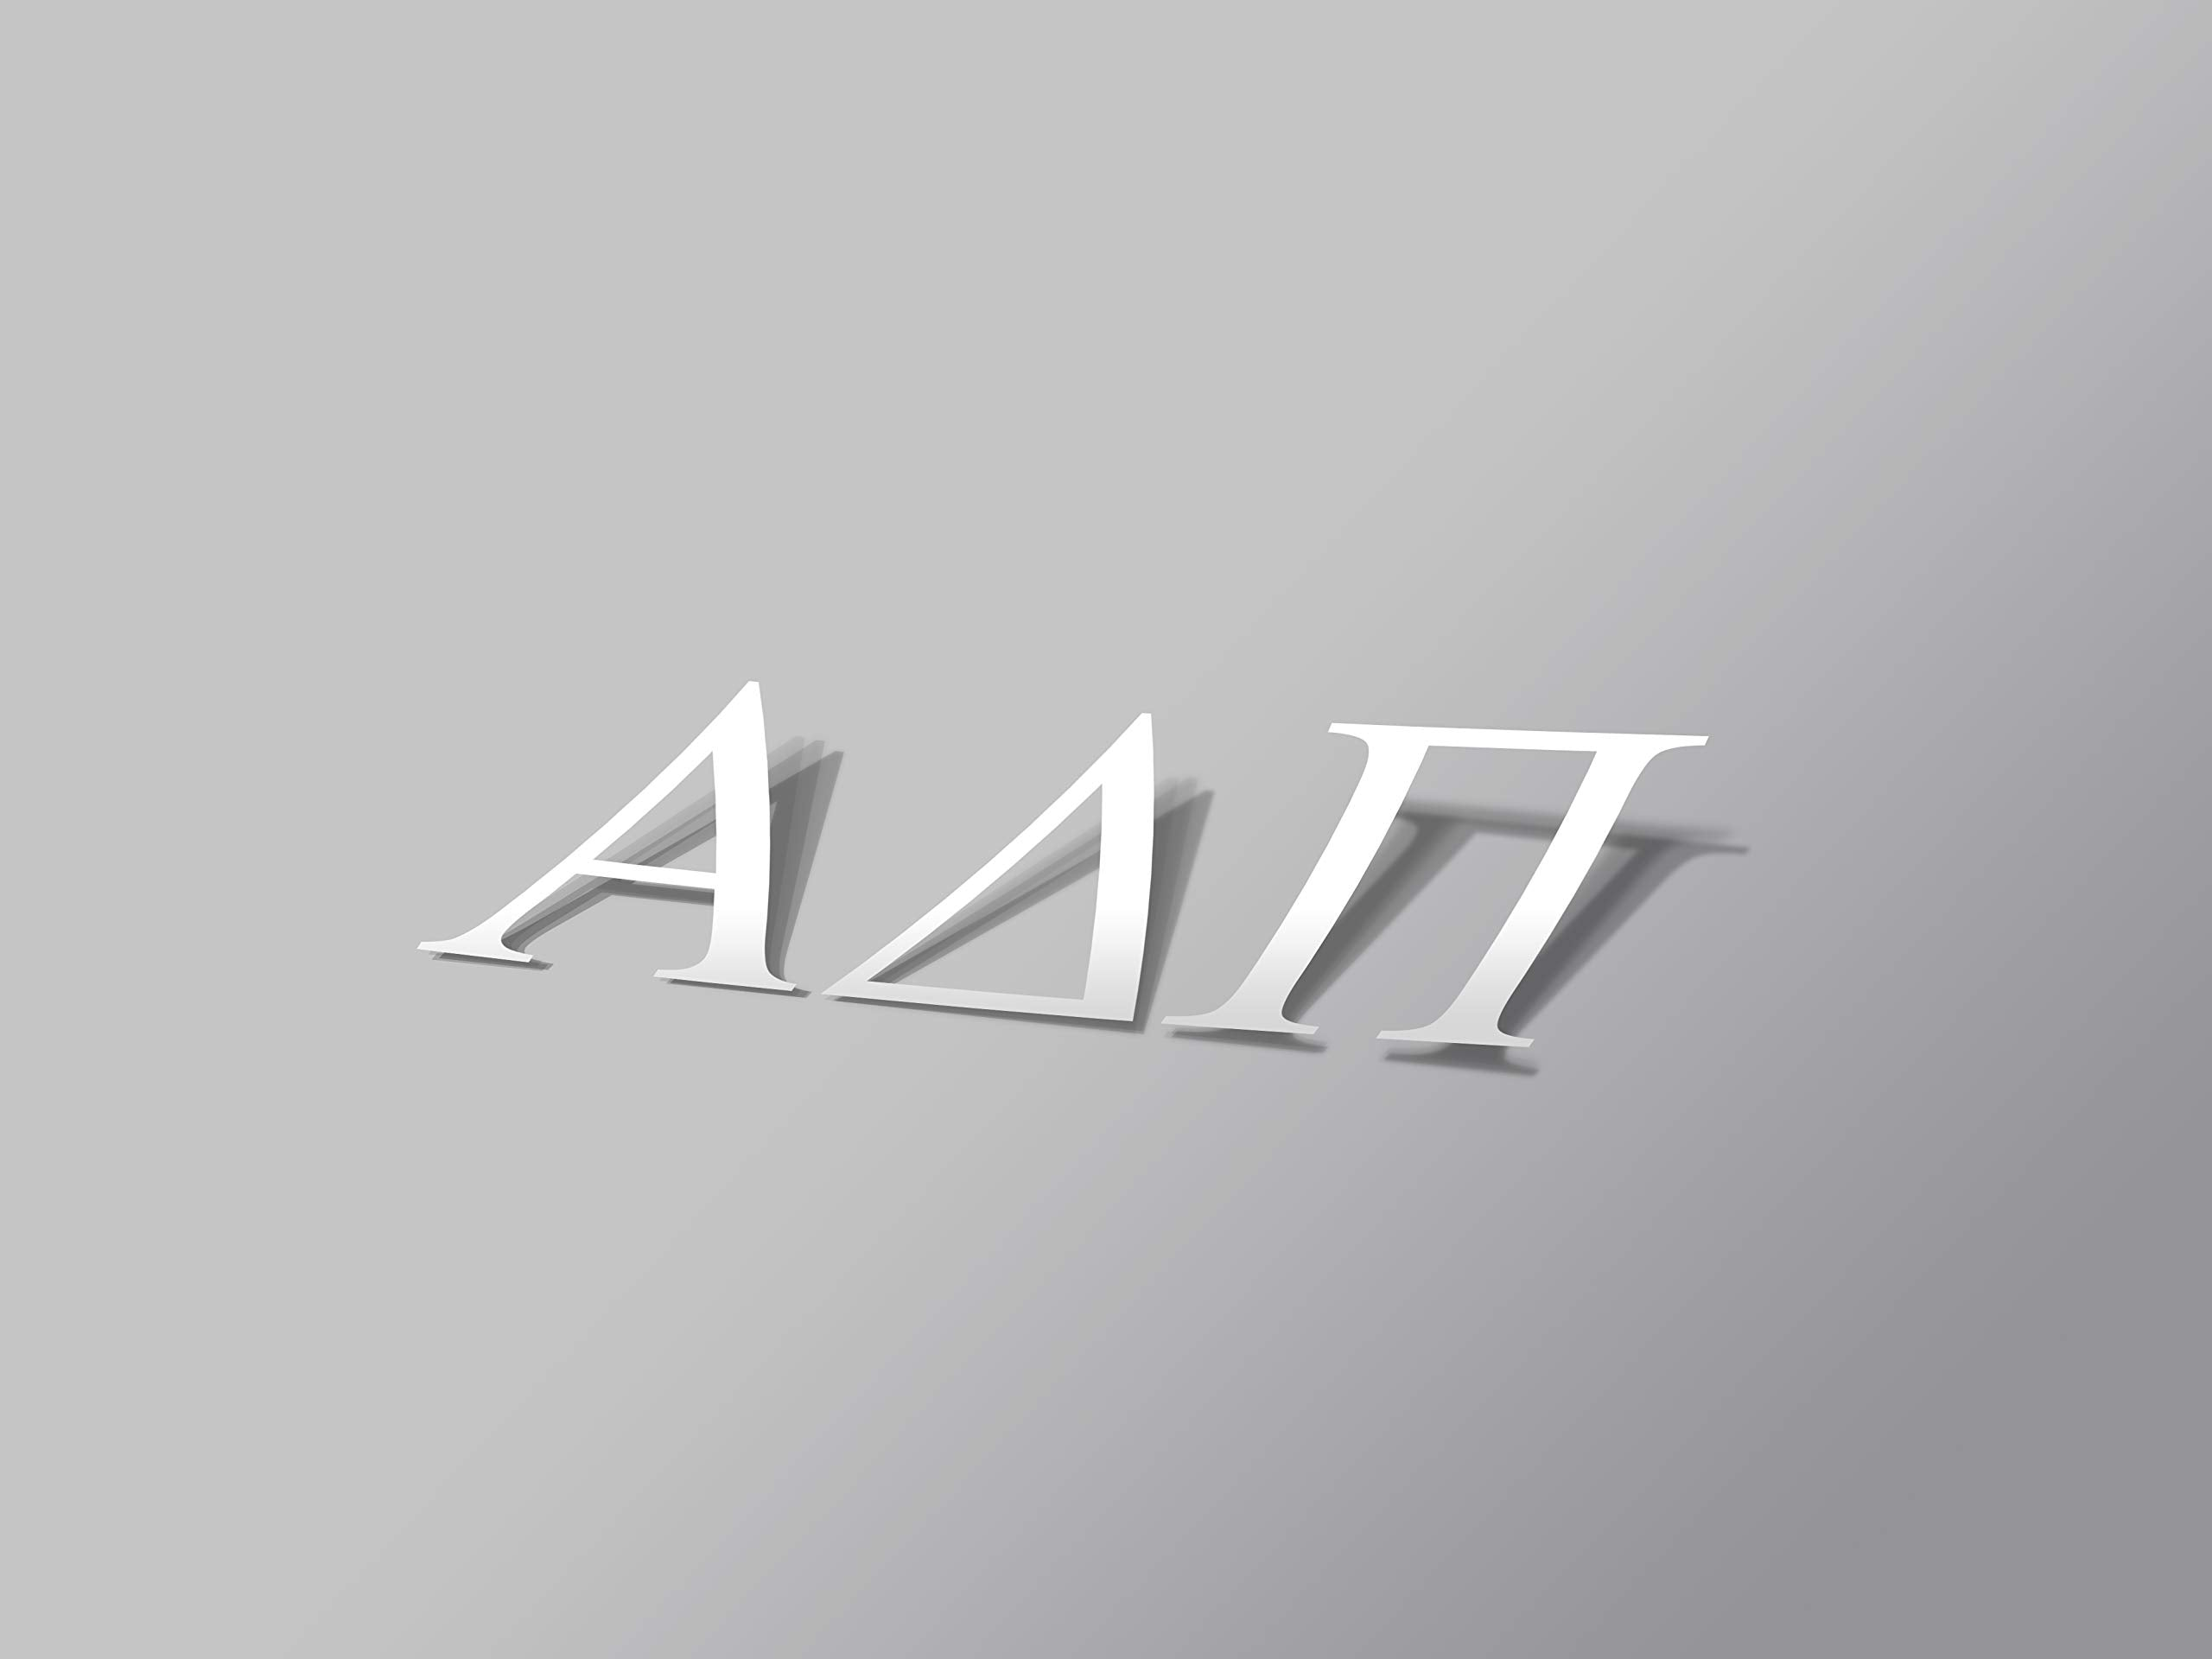 "Alpha Delta Pi Sticker Greek Sorority Decal for Car, Laptop, Windows, Officially Licensed Product, Monogram Design 2.5"" Tall - White - White"